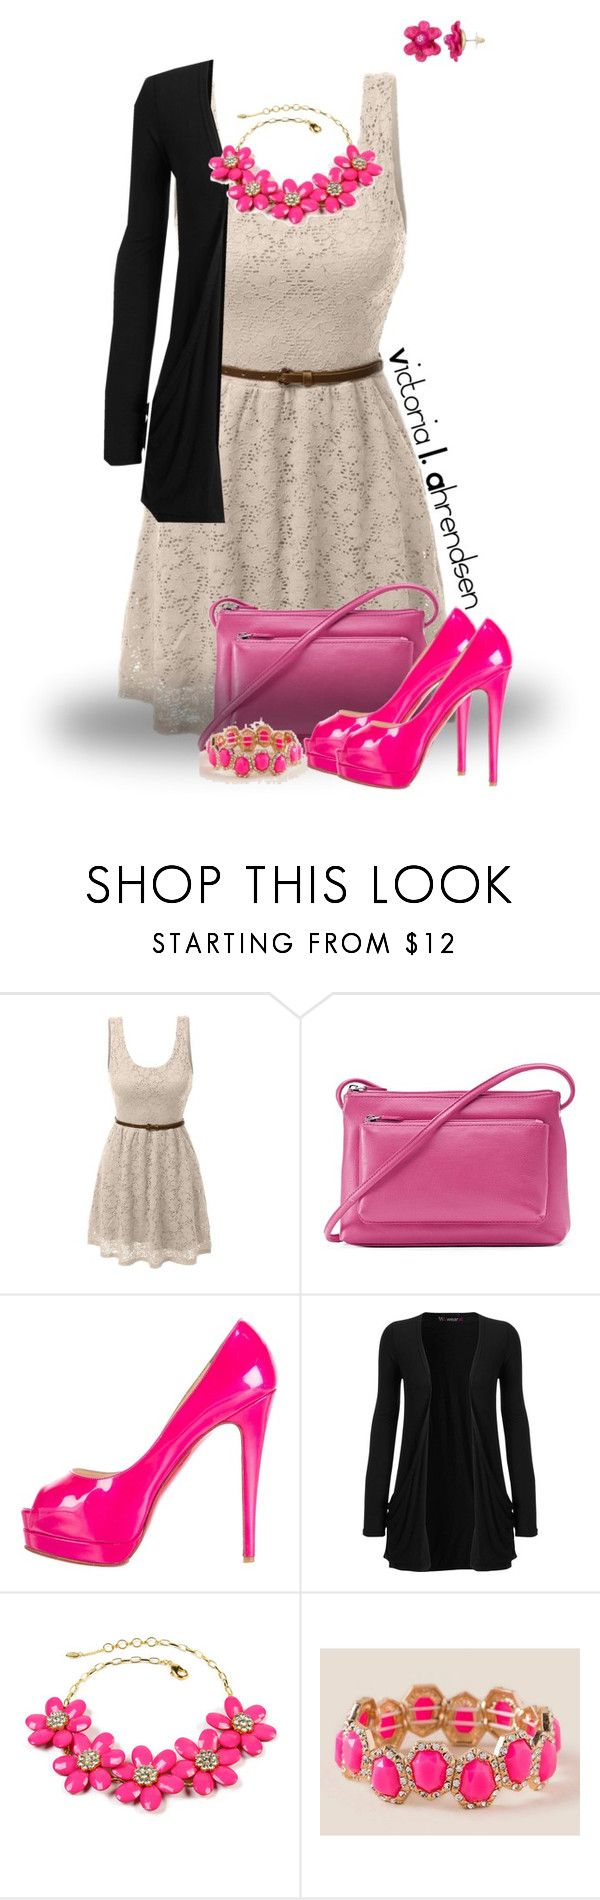 """""""Outfit Set #112! :-)"""" by vahrendsen1988 ❤ liked on Polyvore featuring LE3NO, ILI, Christian Louboutin, WearAll, Amrita Singh, Francesca's and Pink"""